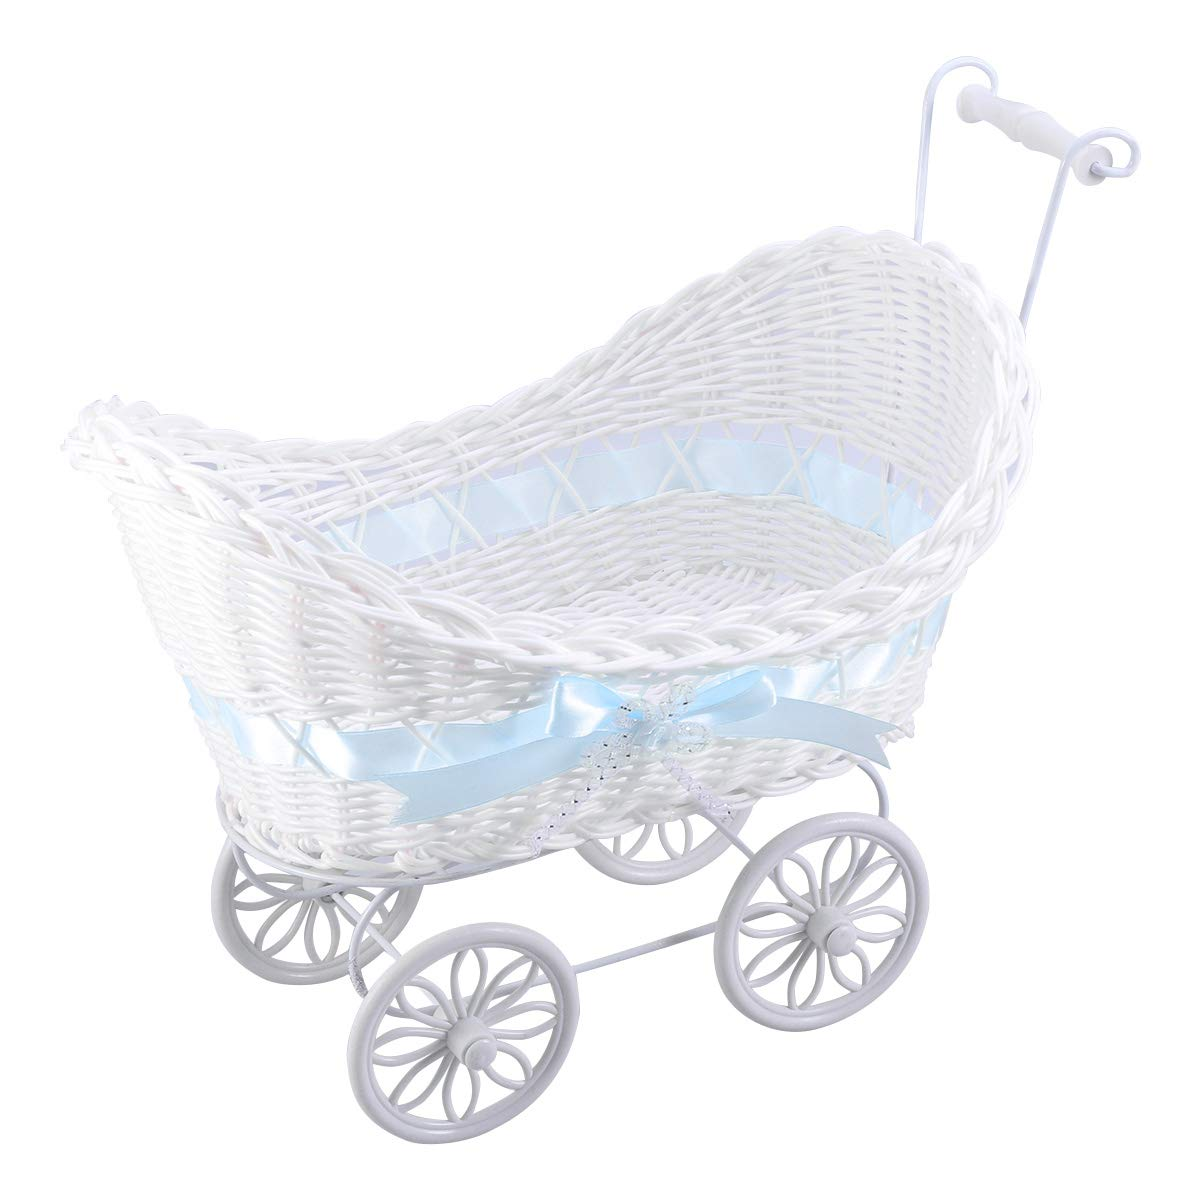 NUOBESTY Wicker Stroller Baby Shower Wedding Centerpiece Stroller Party Favors (Blue)